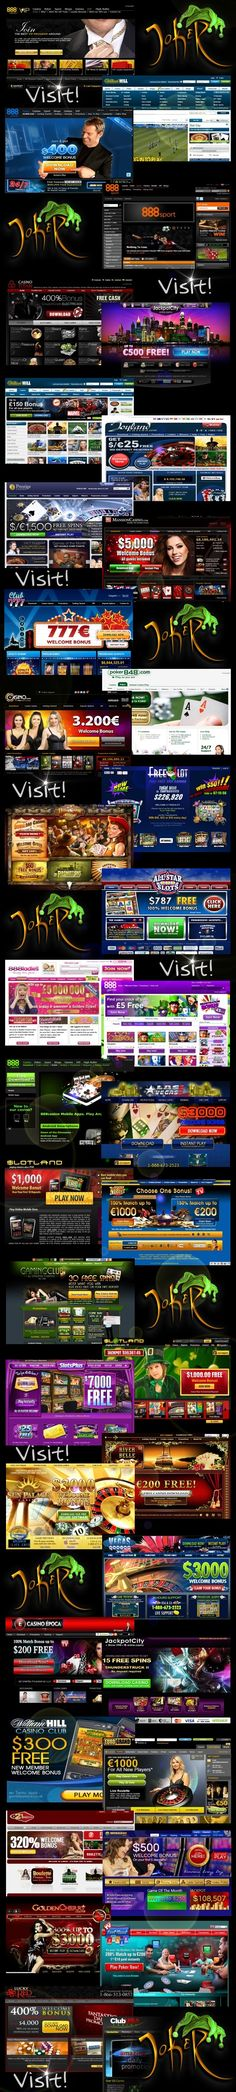 JoKeR - Top 50 Online Casinos & Sports Betting in WORLD, with good Promotions and Offers.   Visit! >> http://joker777.weebly.com/